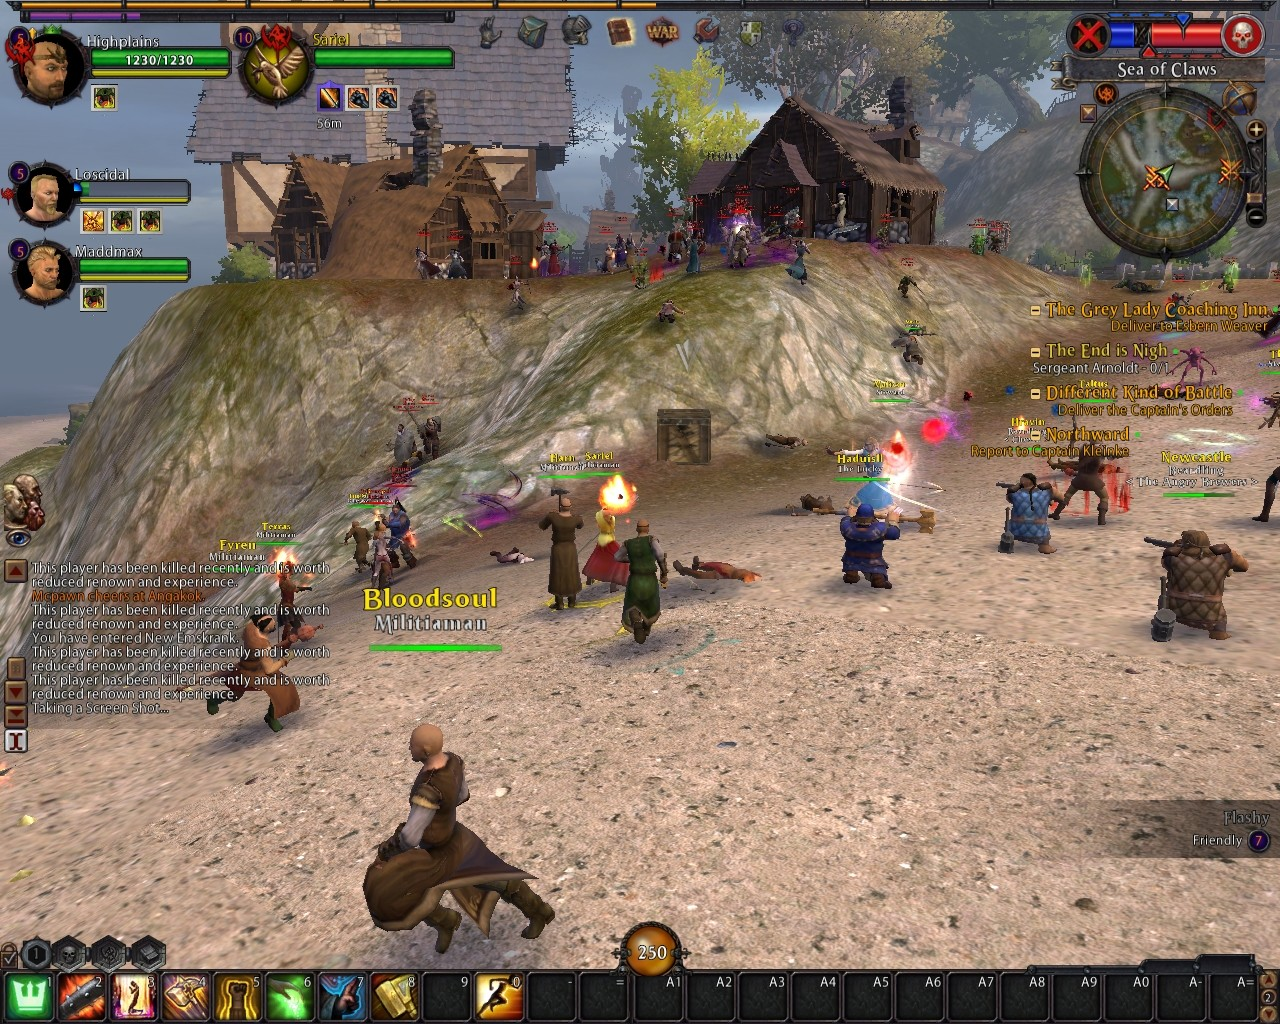 Warhammer Online: Age of Reckoning - RvR - Fastest Framerate for Graphics